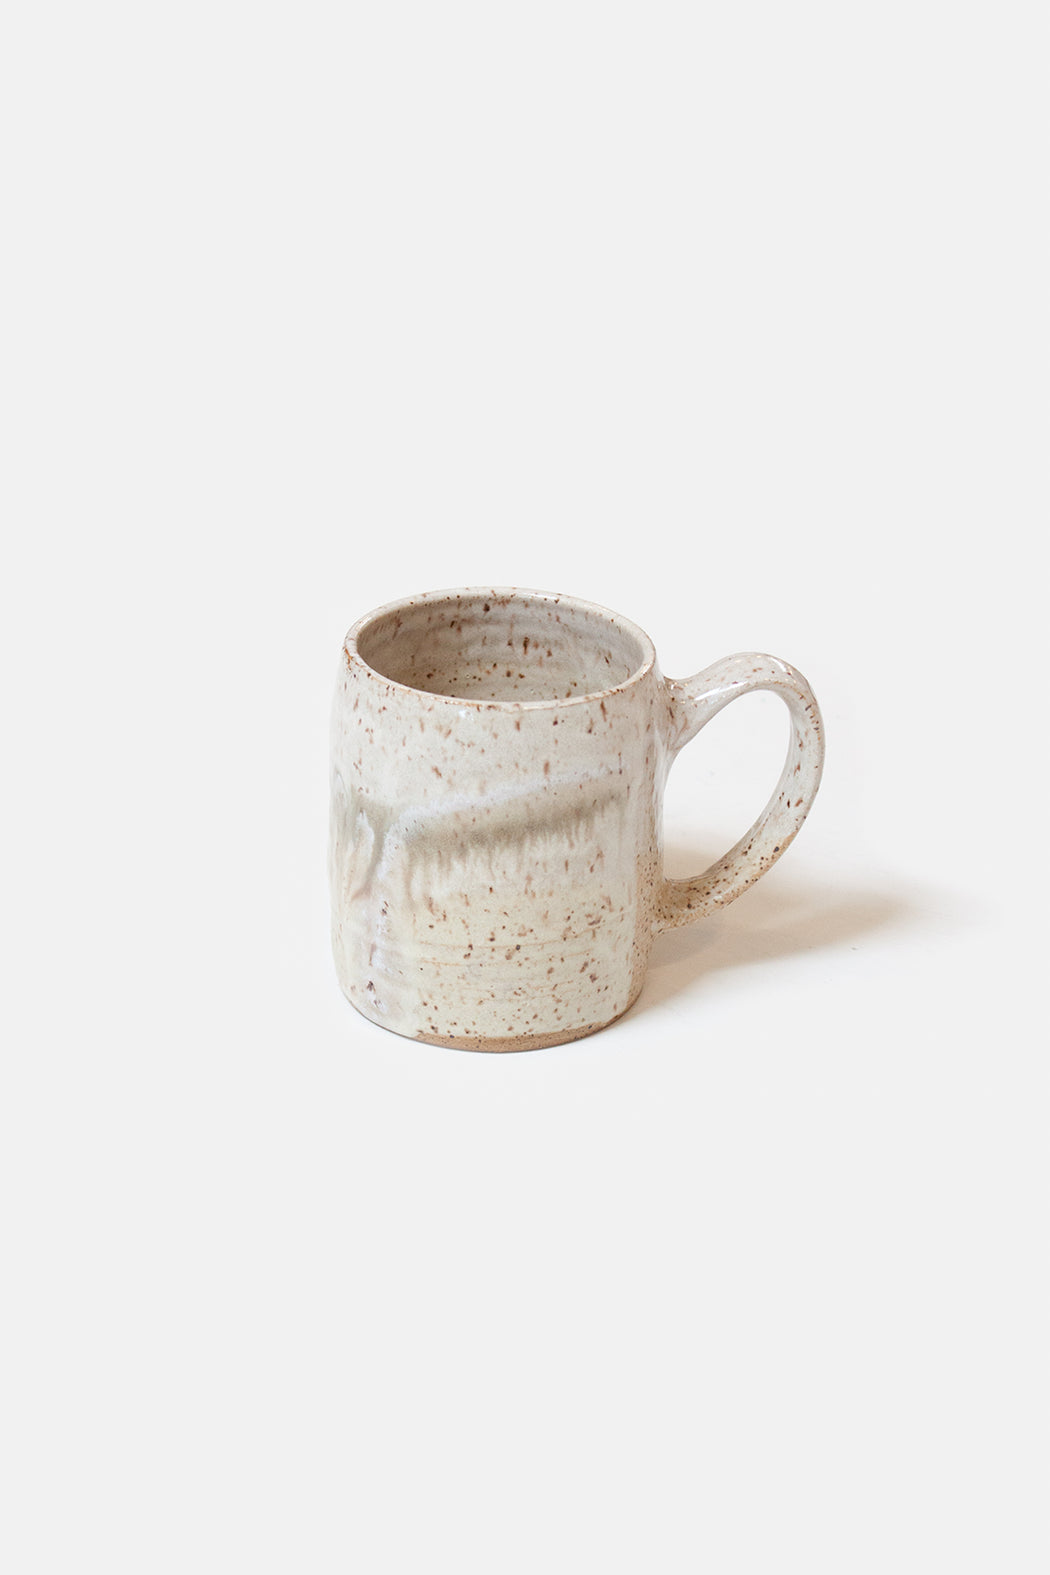 Gina DeSantis Ceramics | Borealis Mug | Dawn | Hazel & Rose | Minneapolis | Minnesota